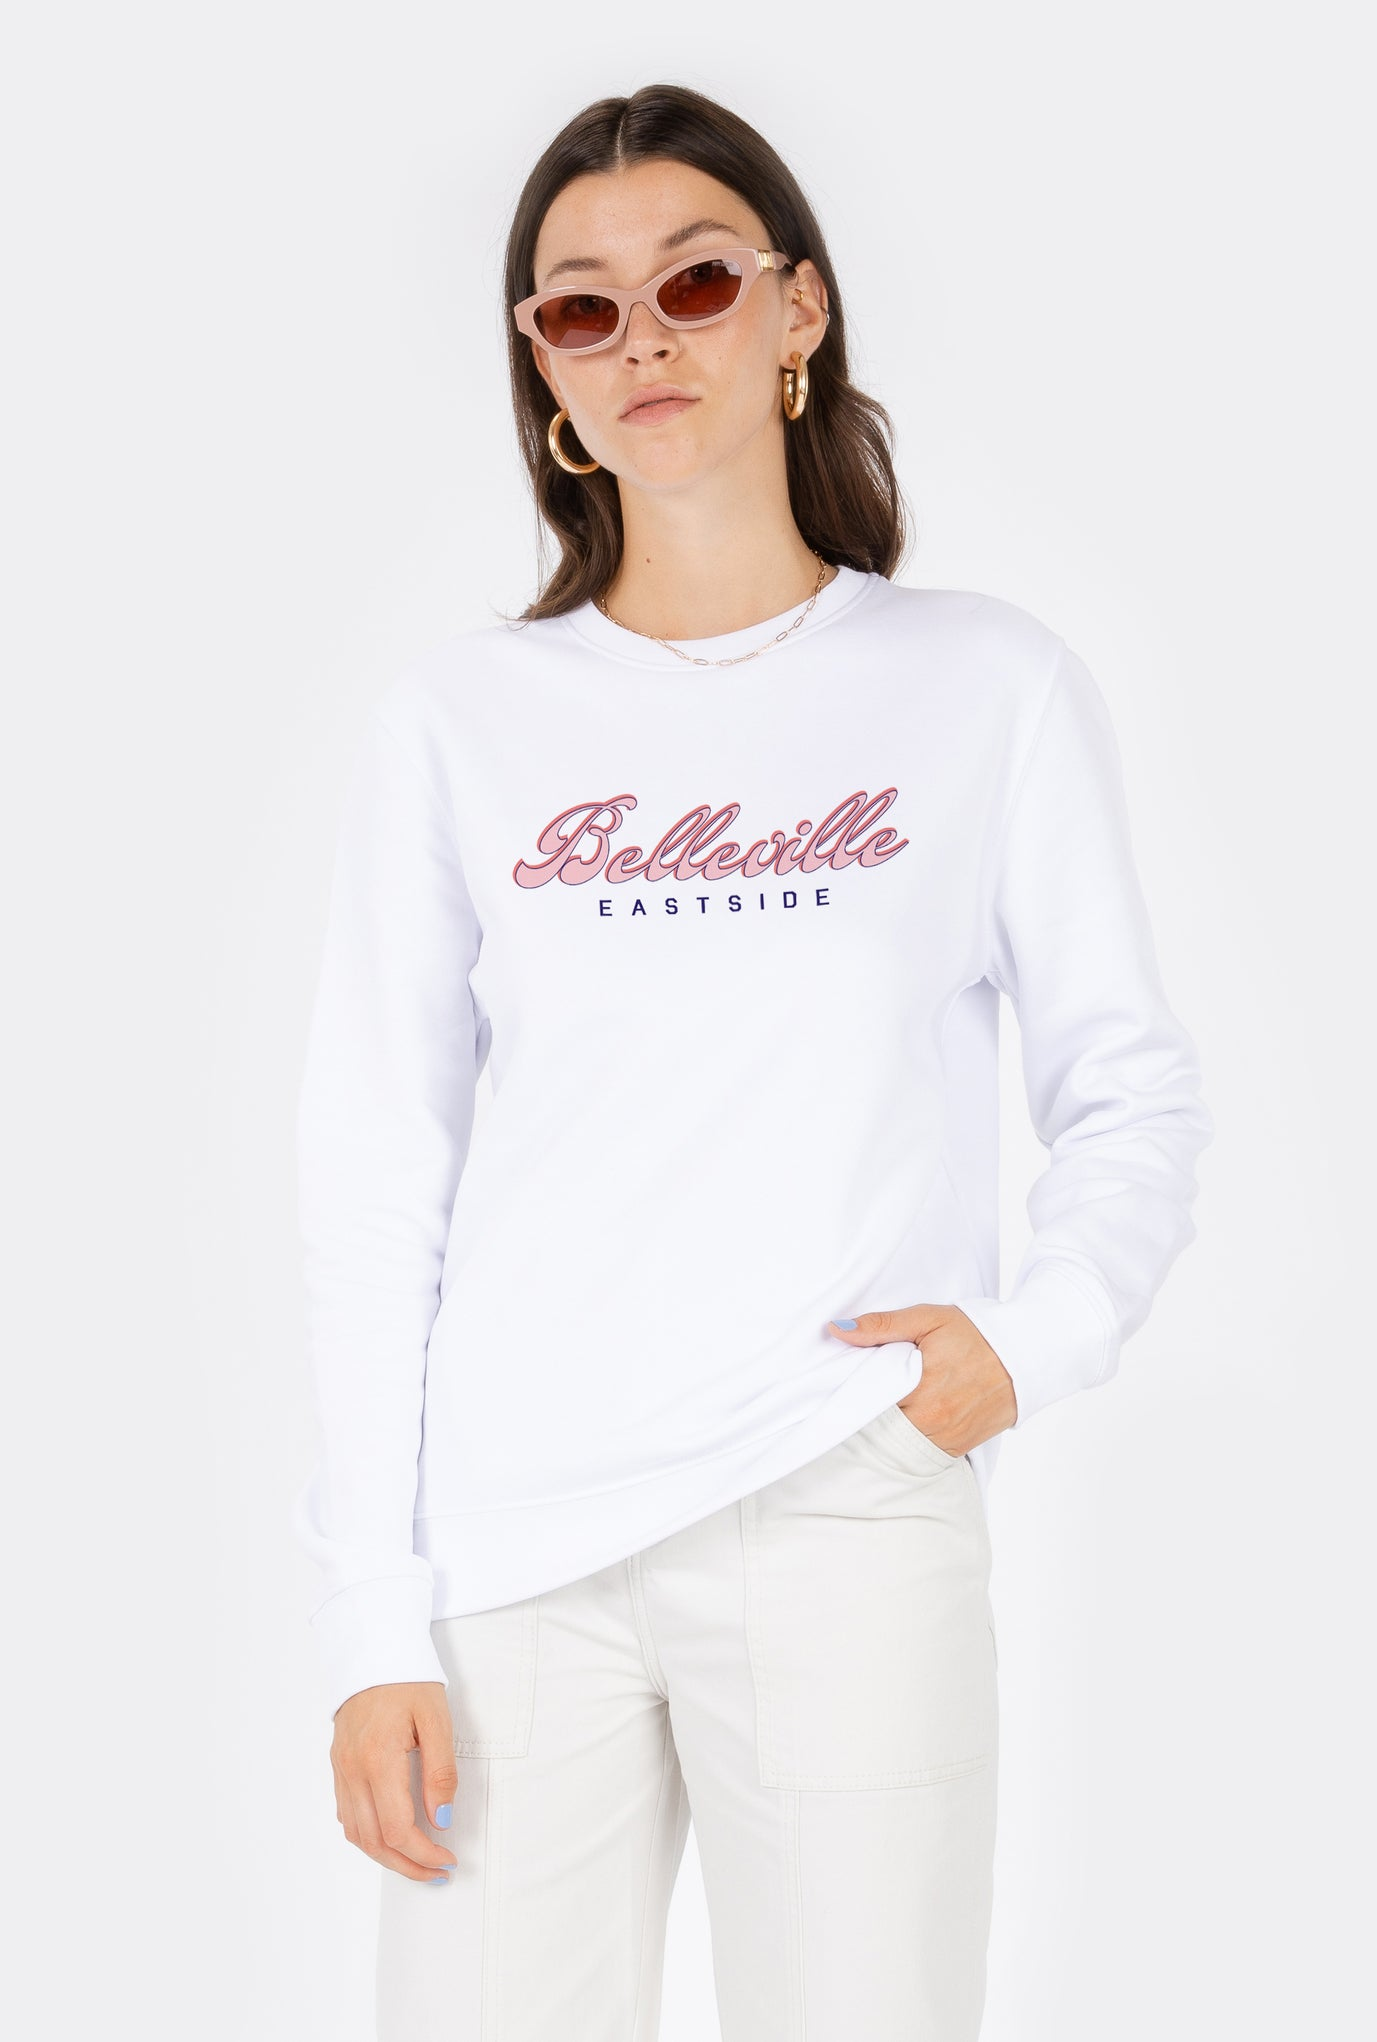 Crewneck Belleville Eastside